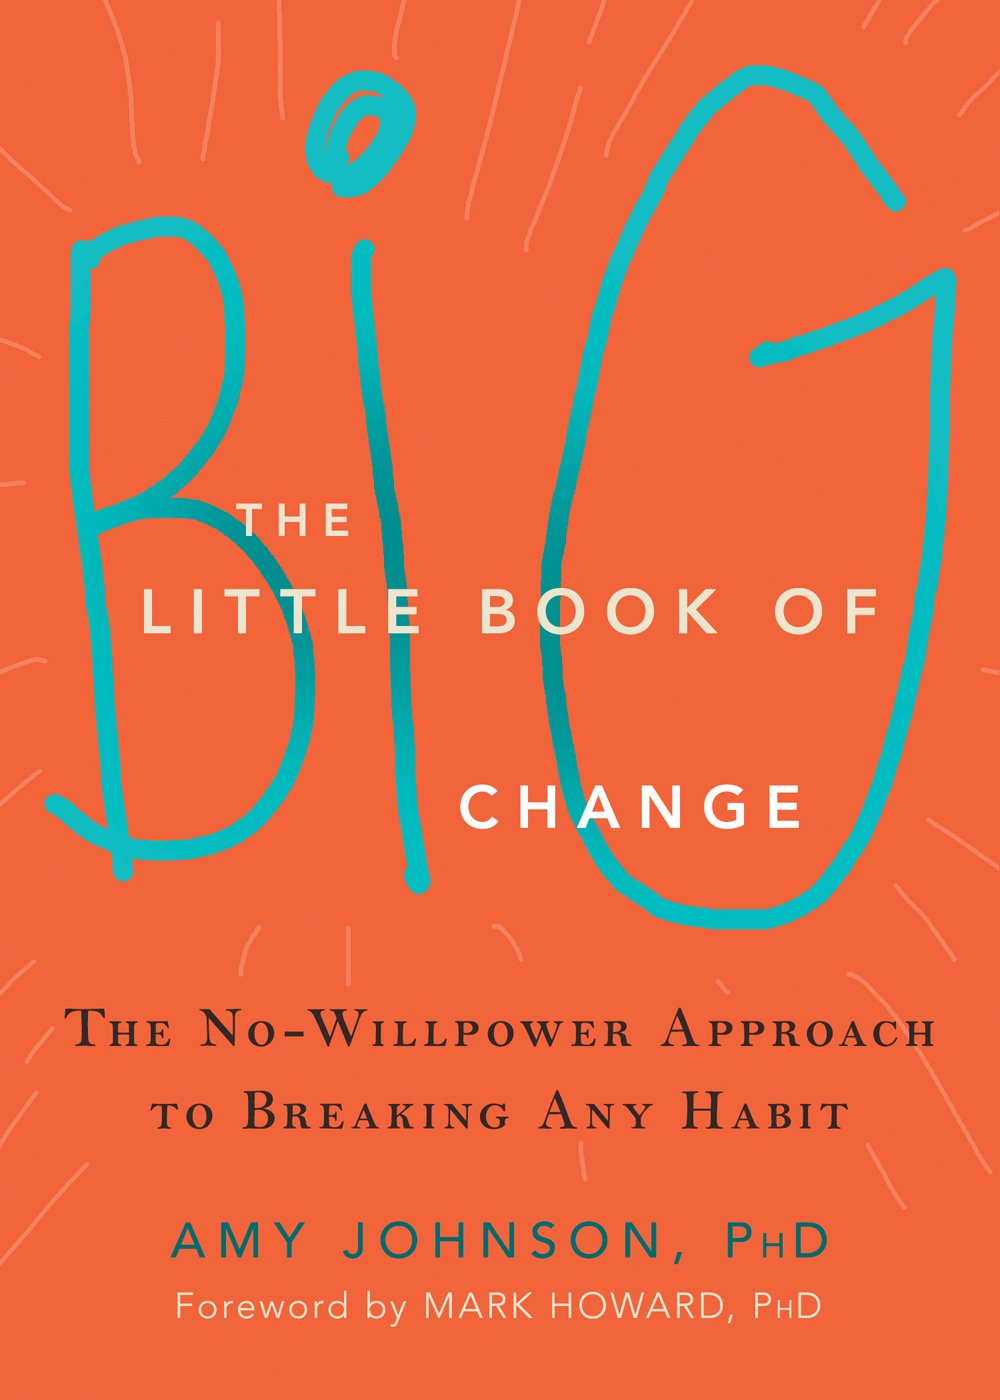 The Little Book of Big Change: The No-Willpower Approach to Breaking Any Habit pdf